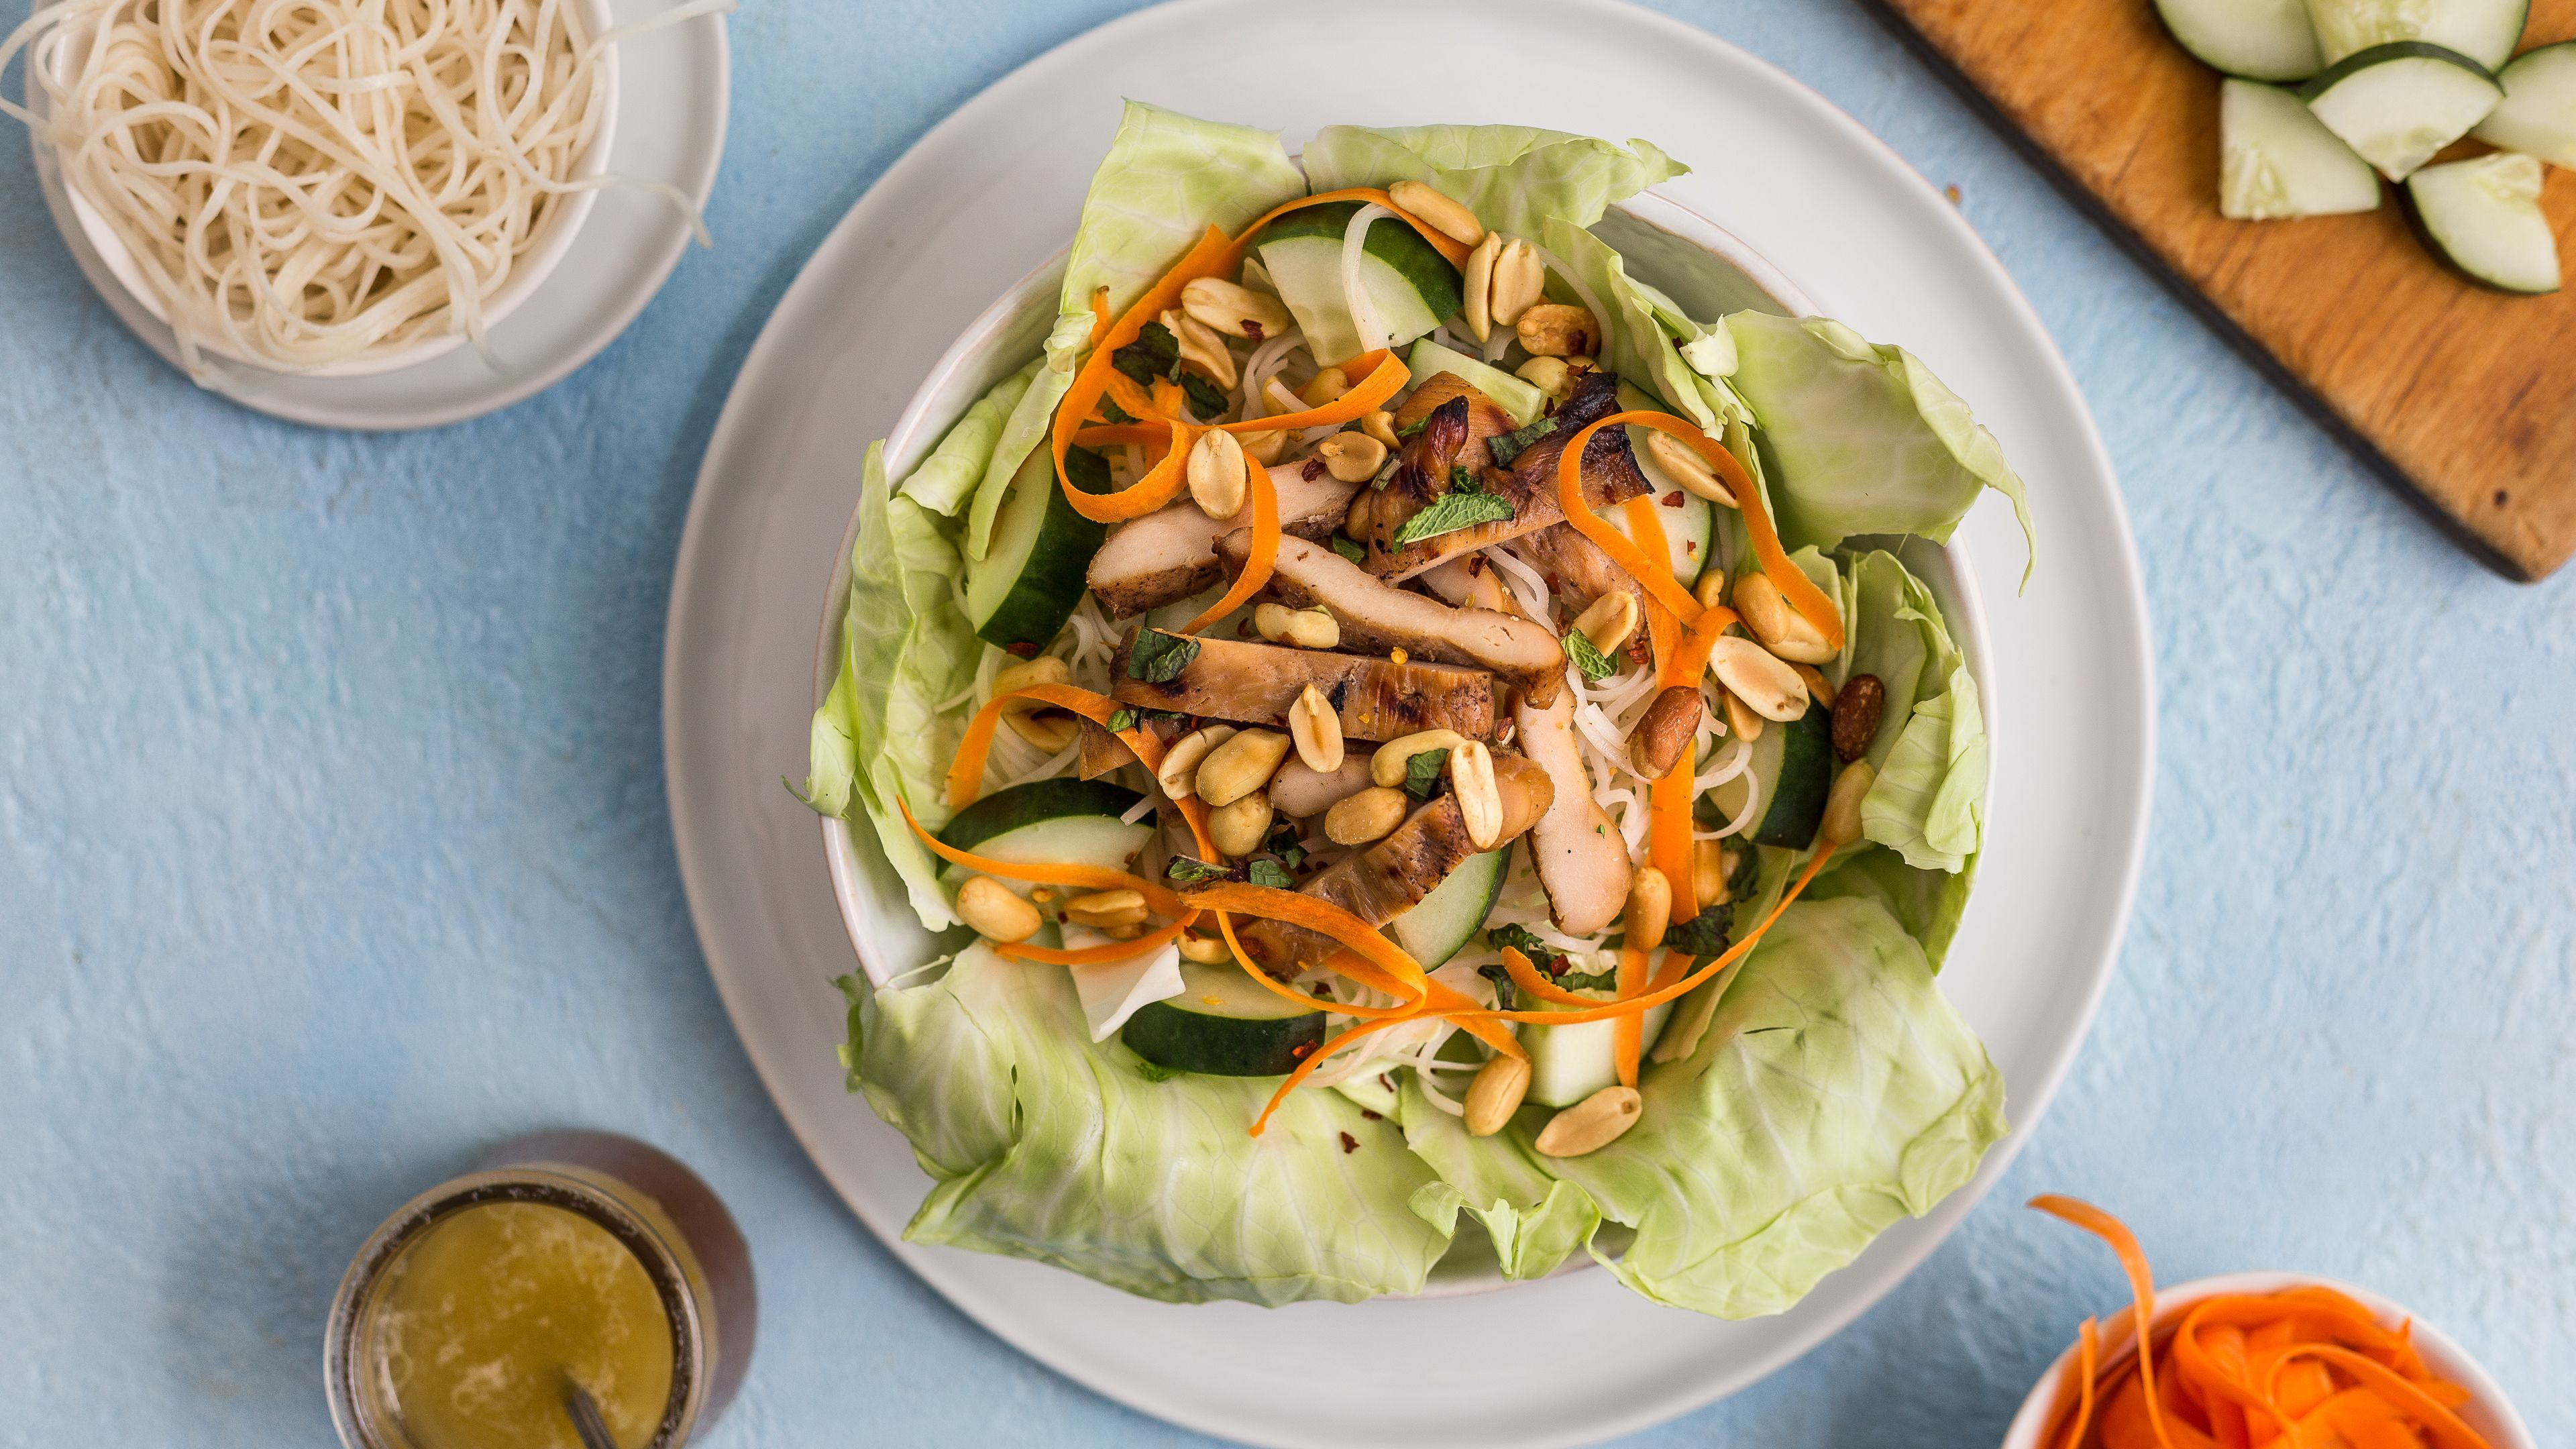 Bun ga nuong grilled chicken and vermicelli salad